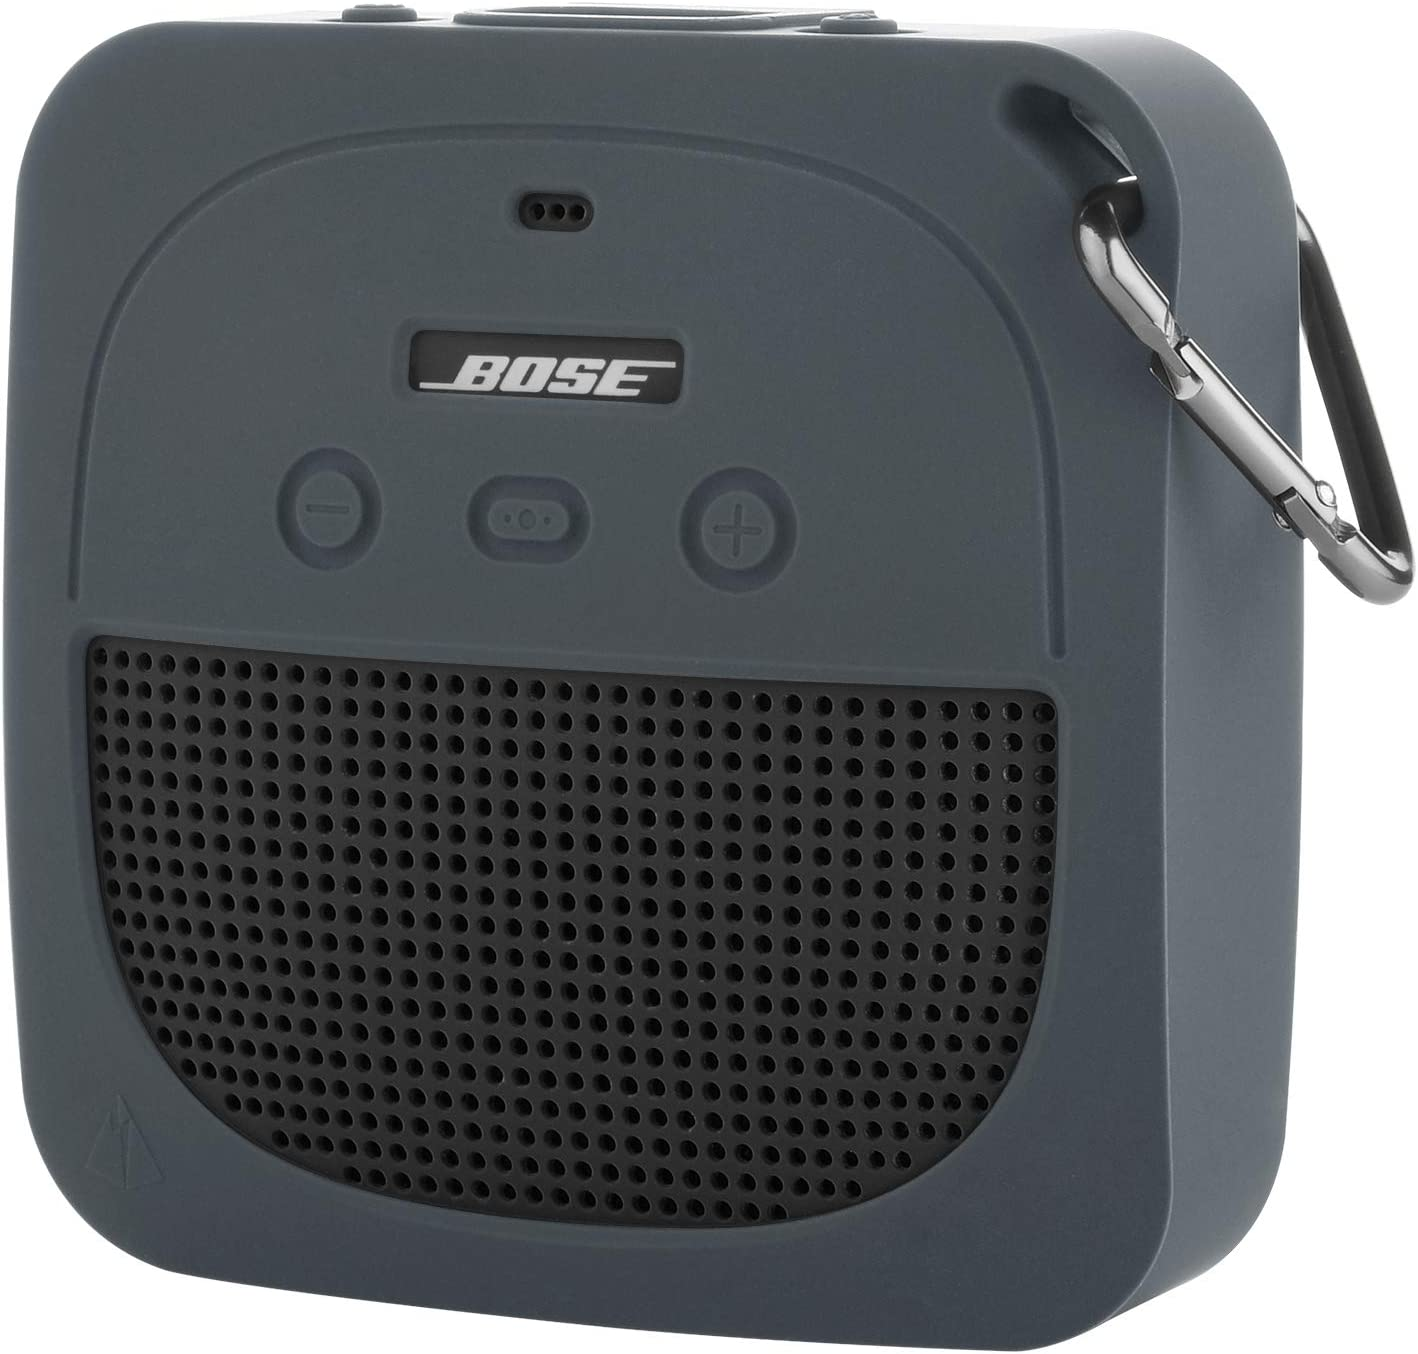 TXEsign Protective Silicone Stand Up Case for Bose Soundlink Micro Waterproof Bluetooth Portable Speaker (Grey)